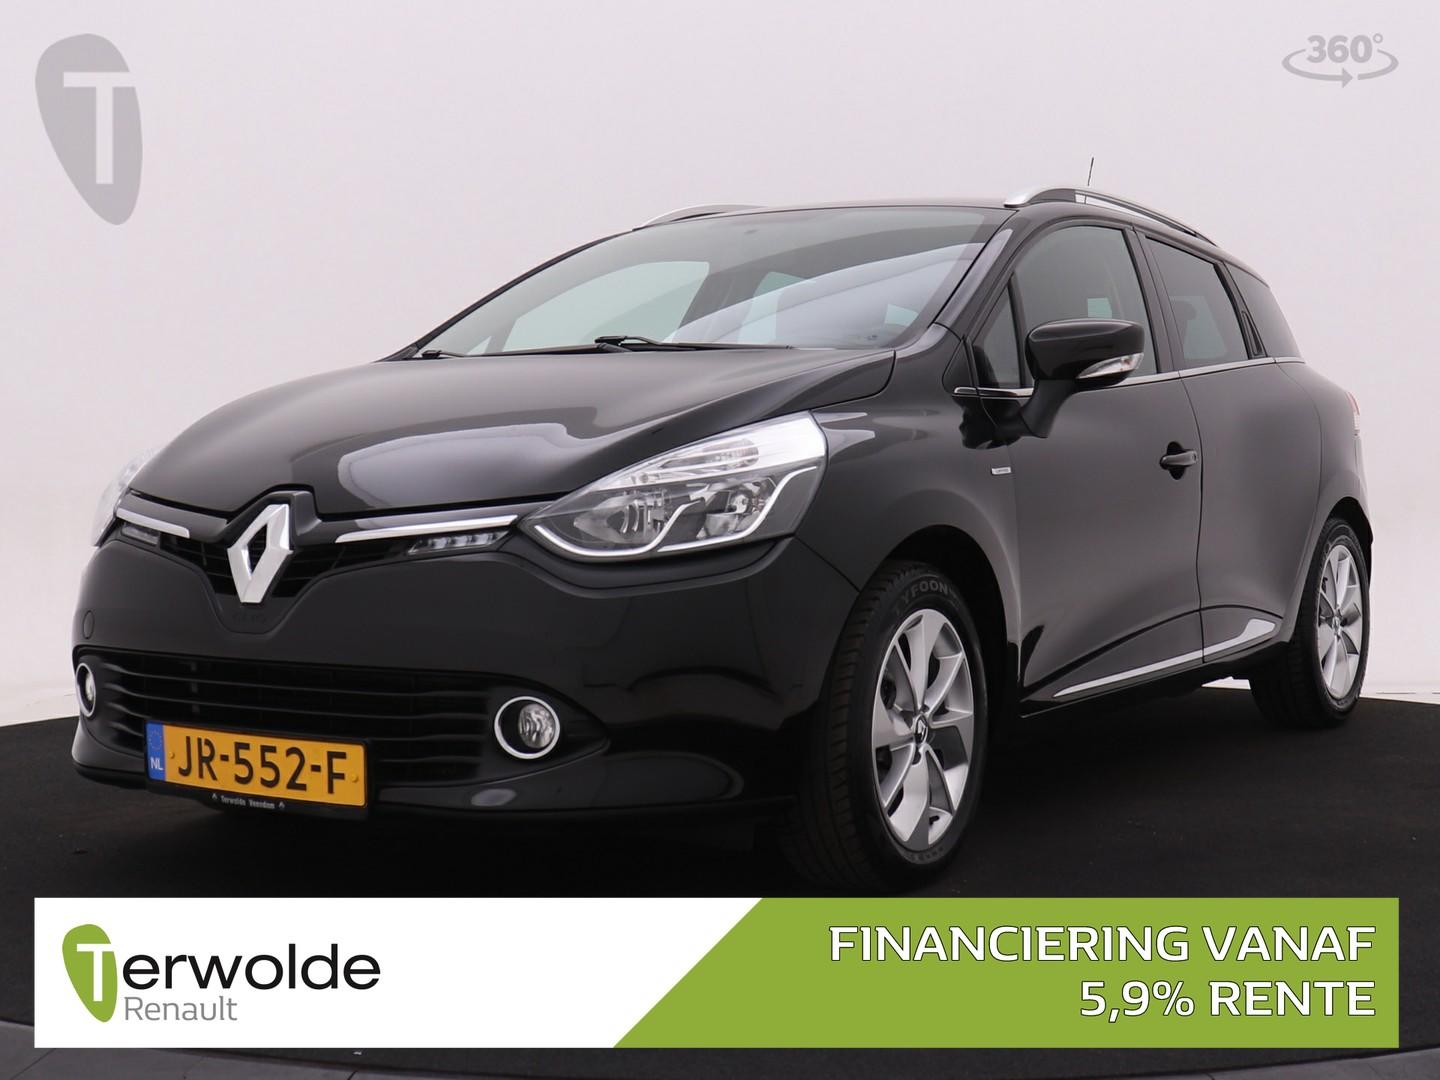 Renault Clio Estate 0.9 tce limited renault clio estate 0.9 tce limited